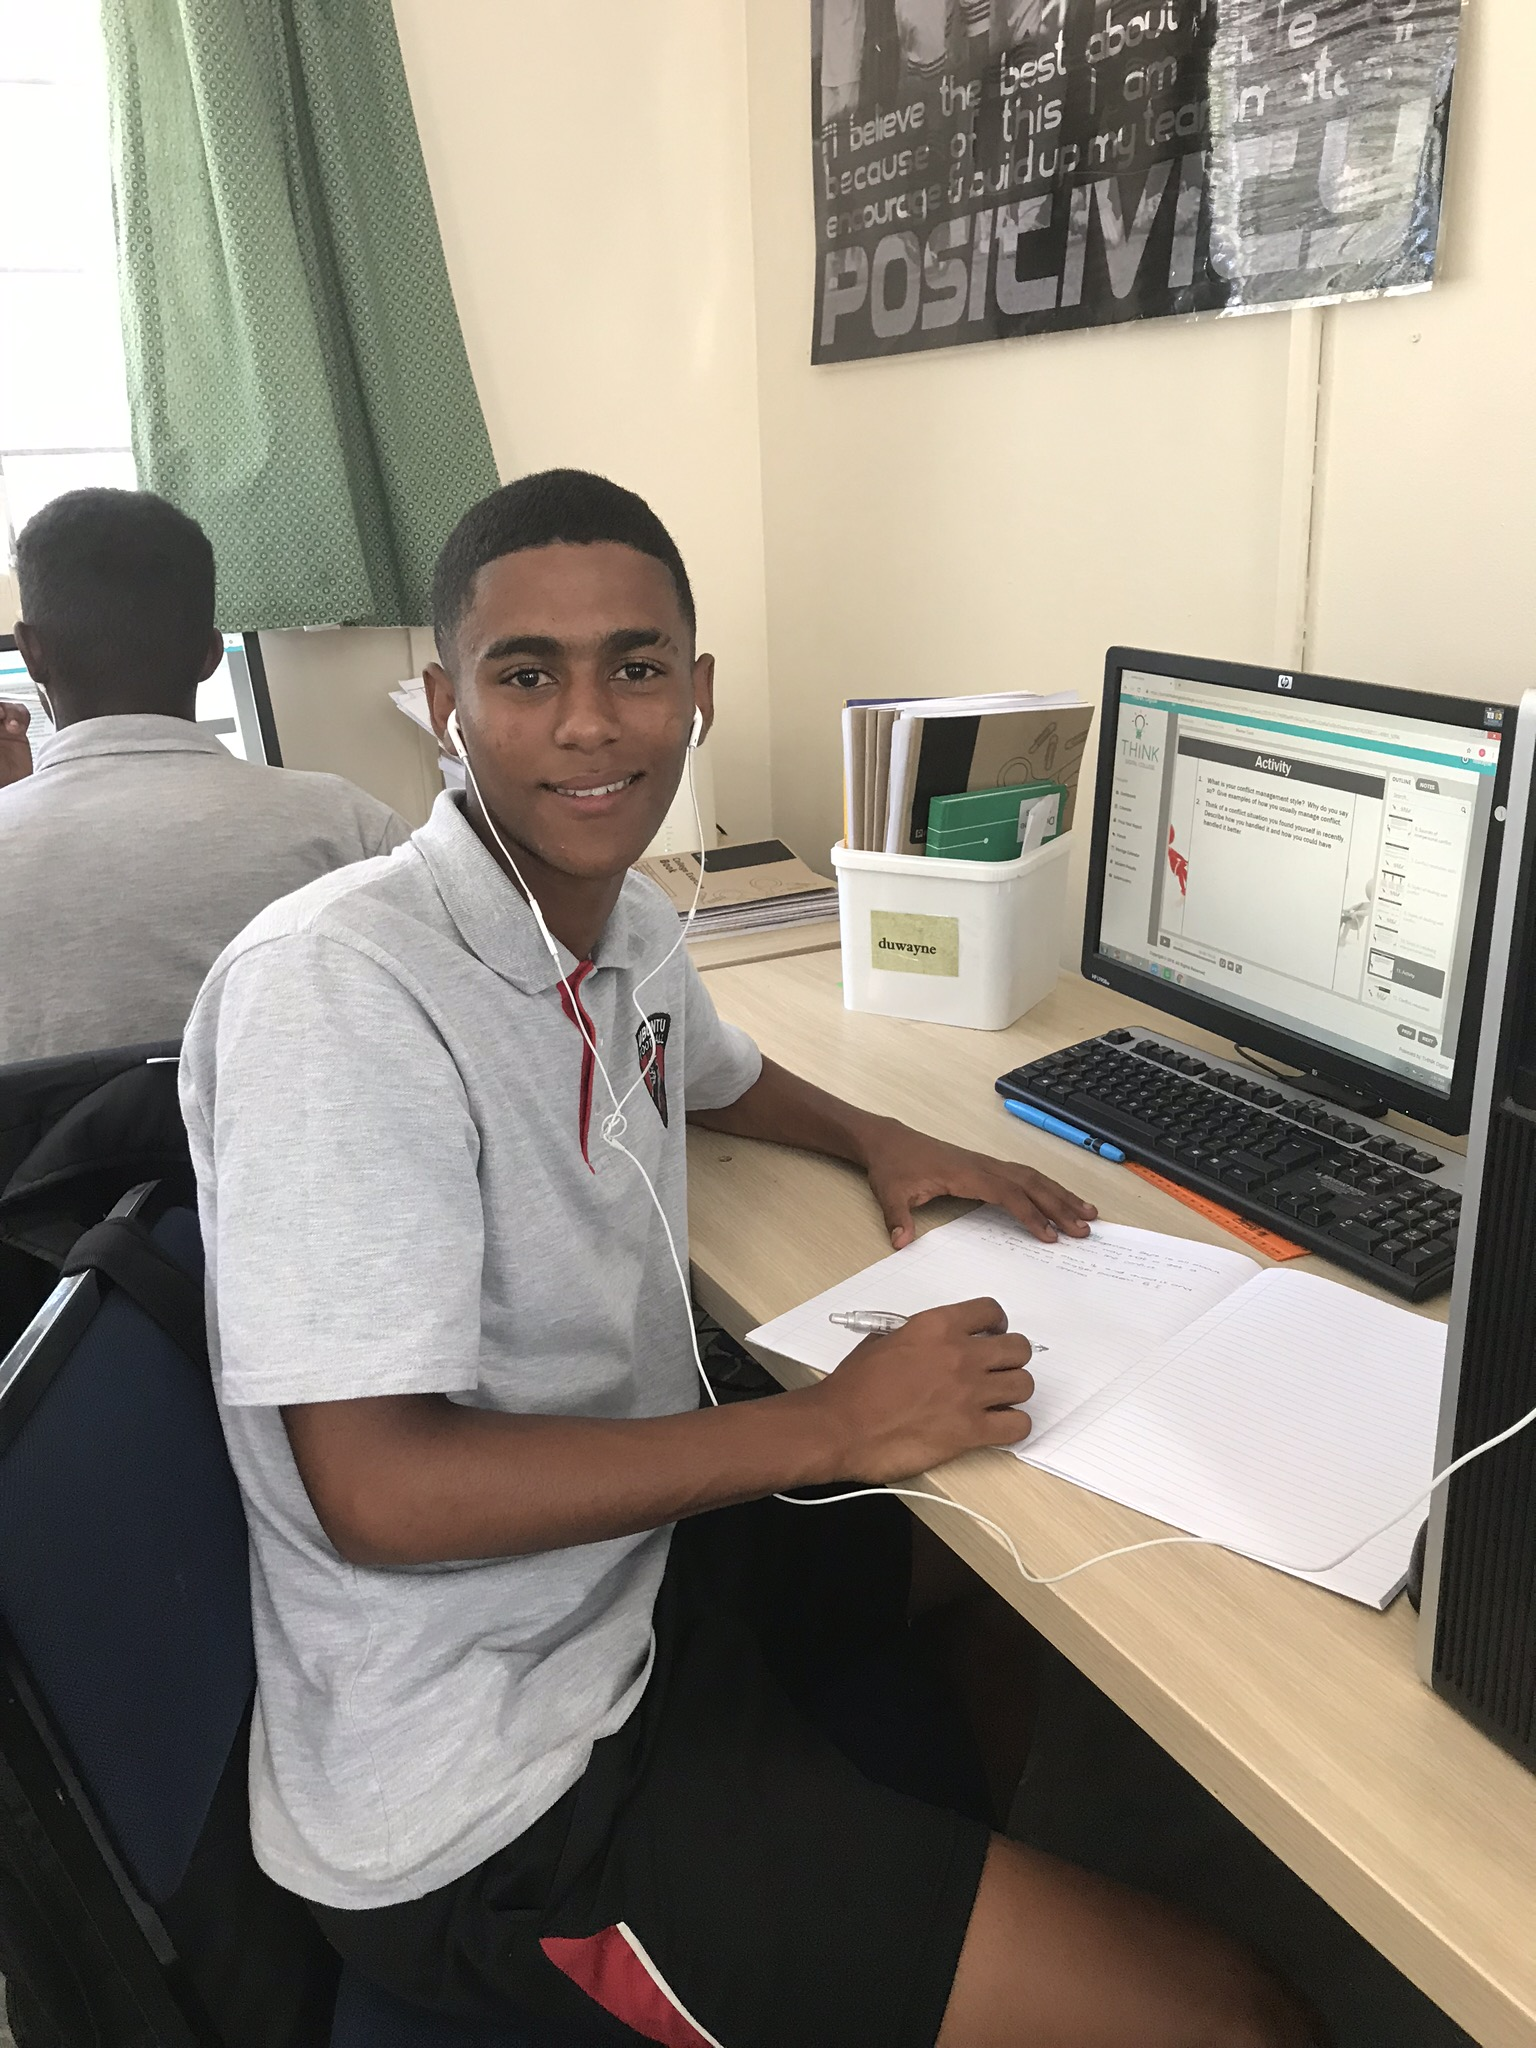 Duwayne is in Grade 12 and is studying hard to finish school at the end of the year.